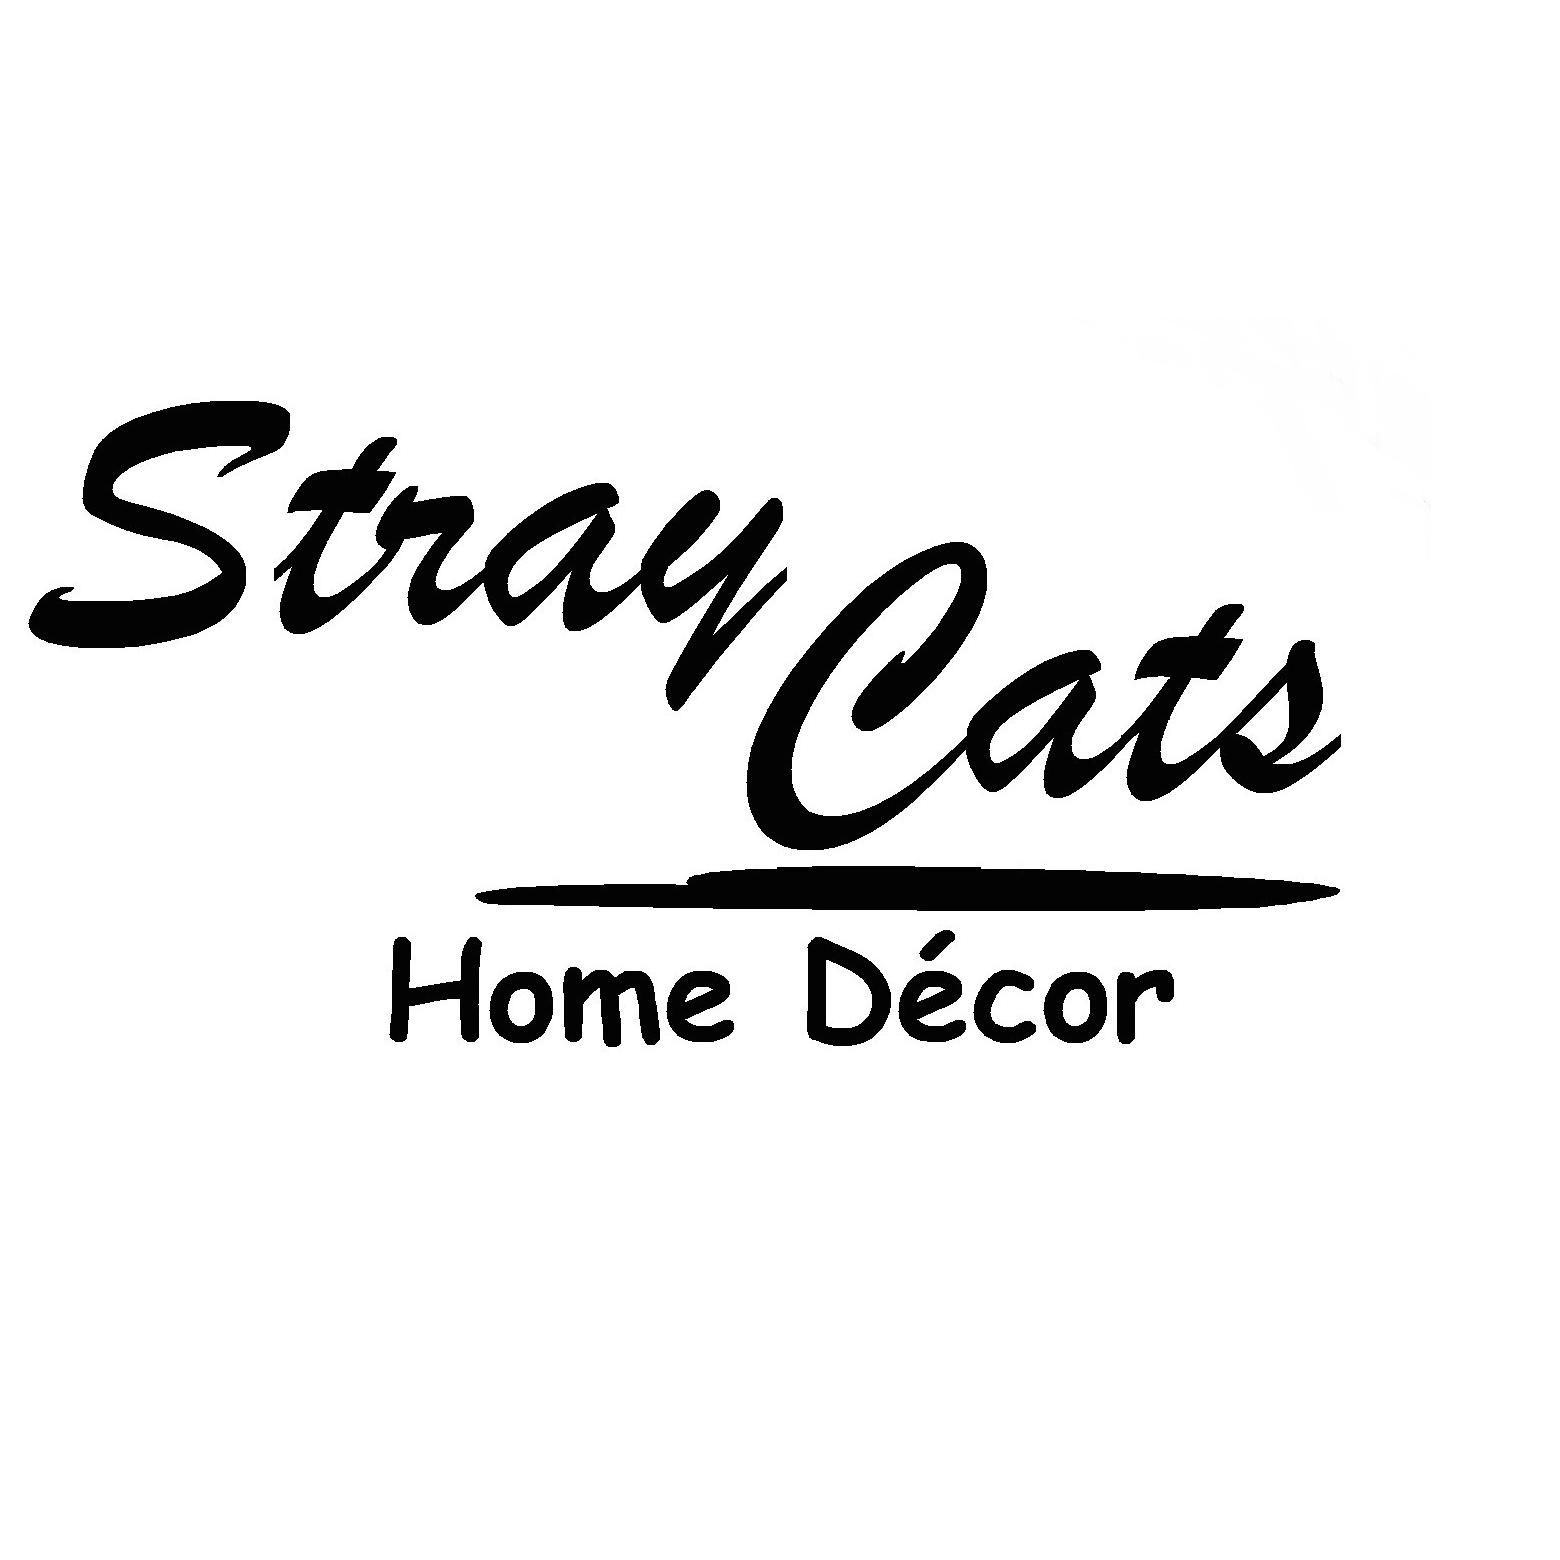 Stray cats home decor coupons near me in birmingham 8coupons for Home decor outlet near me